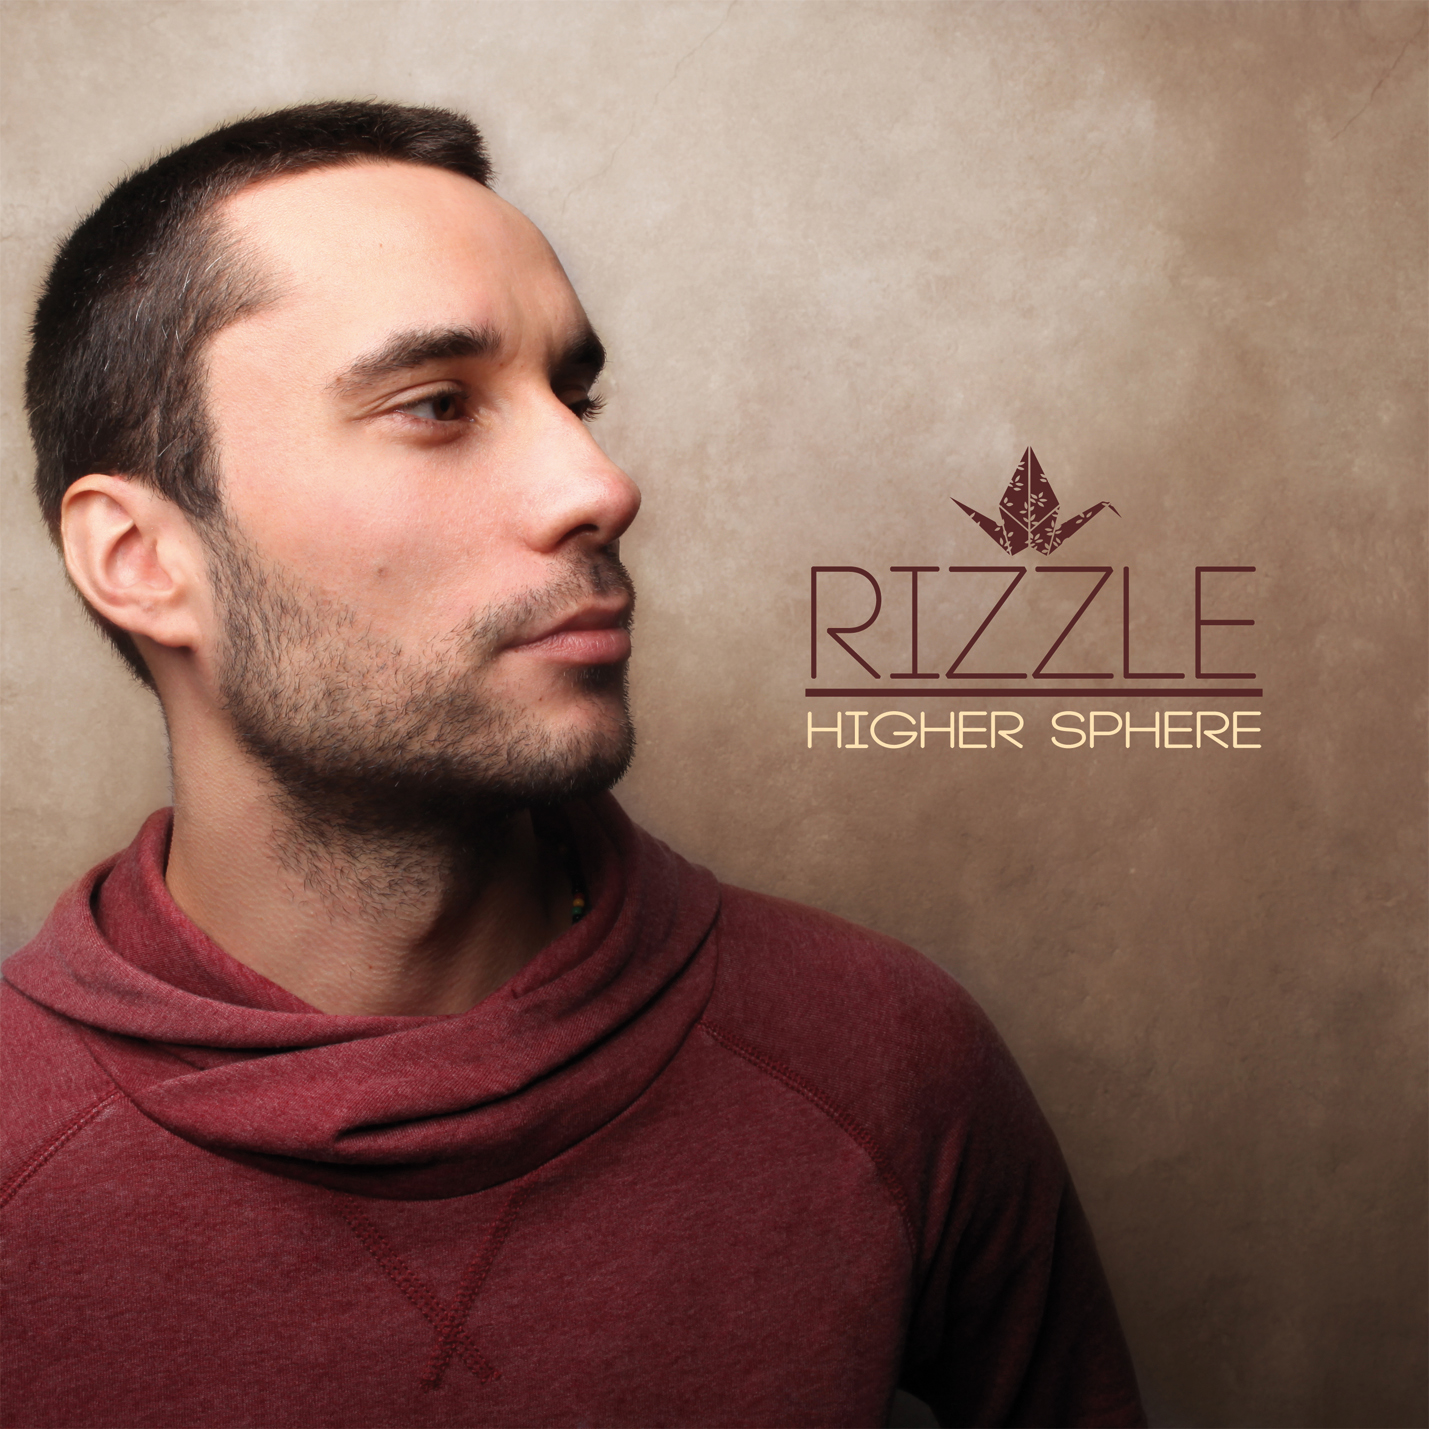 Rizzle - Higher Sphere